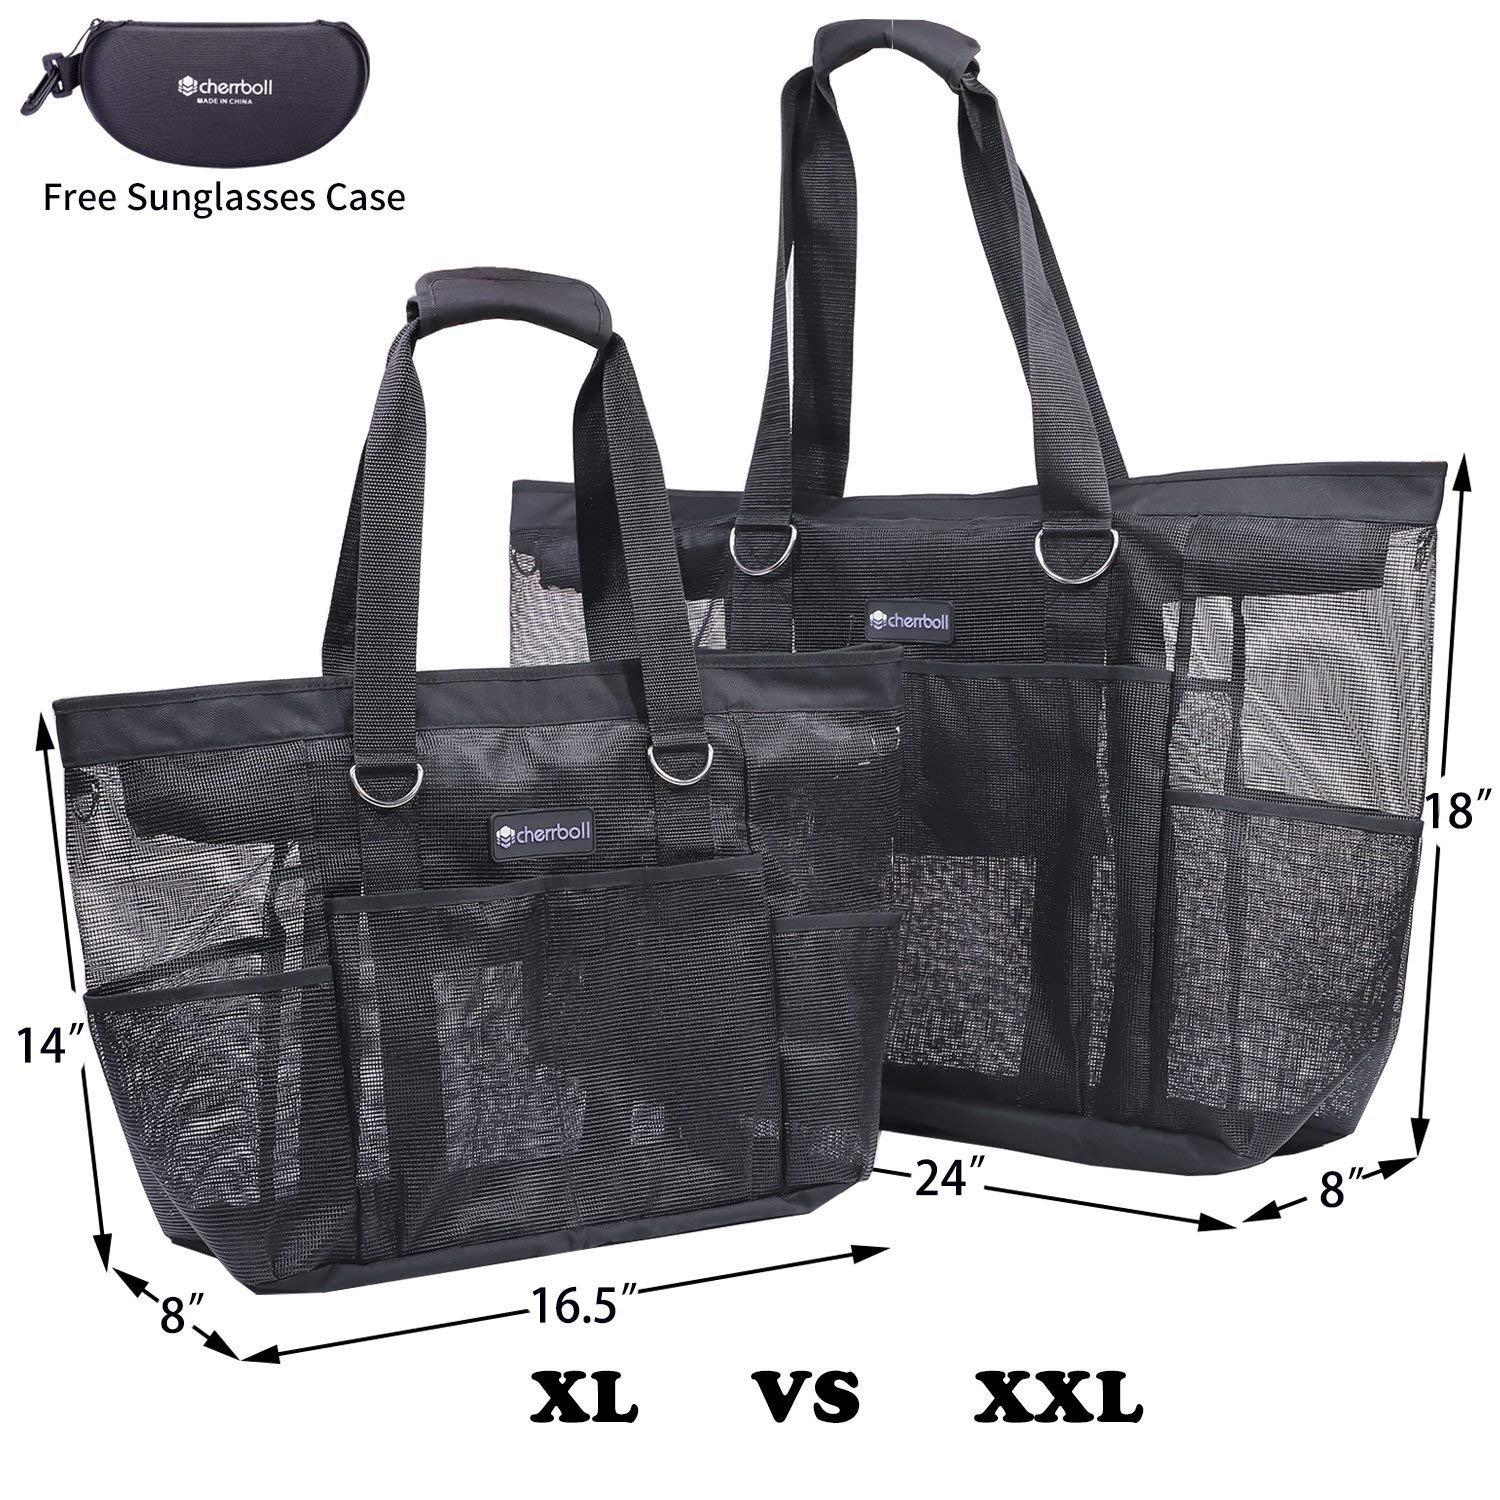 1e15e7167ef7 OOSAKU Mesh Beach Tote Bag with Large Pockets Zippers Portable Outdoor  Travel Bags - Luggage and Travel Accessories